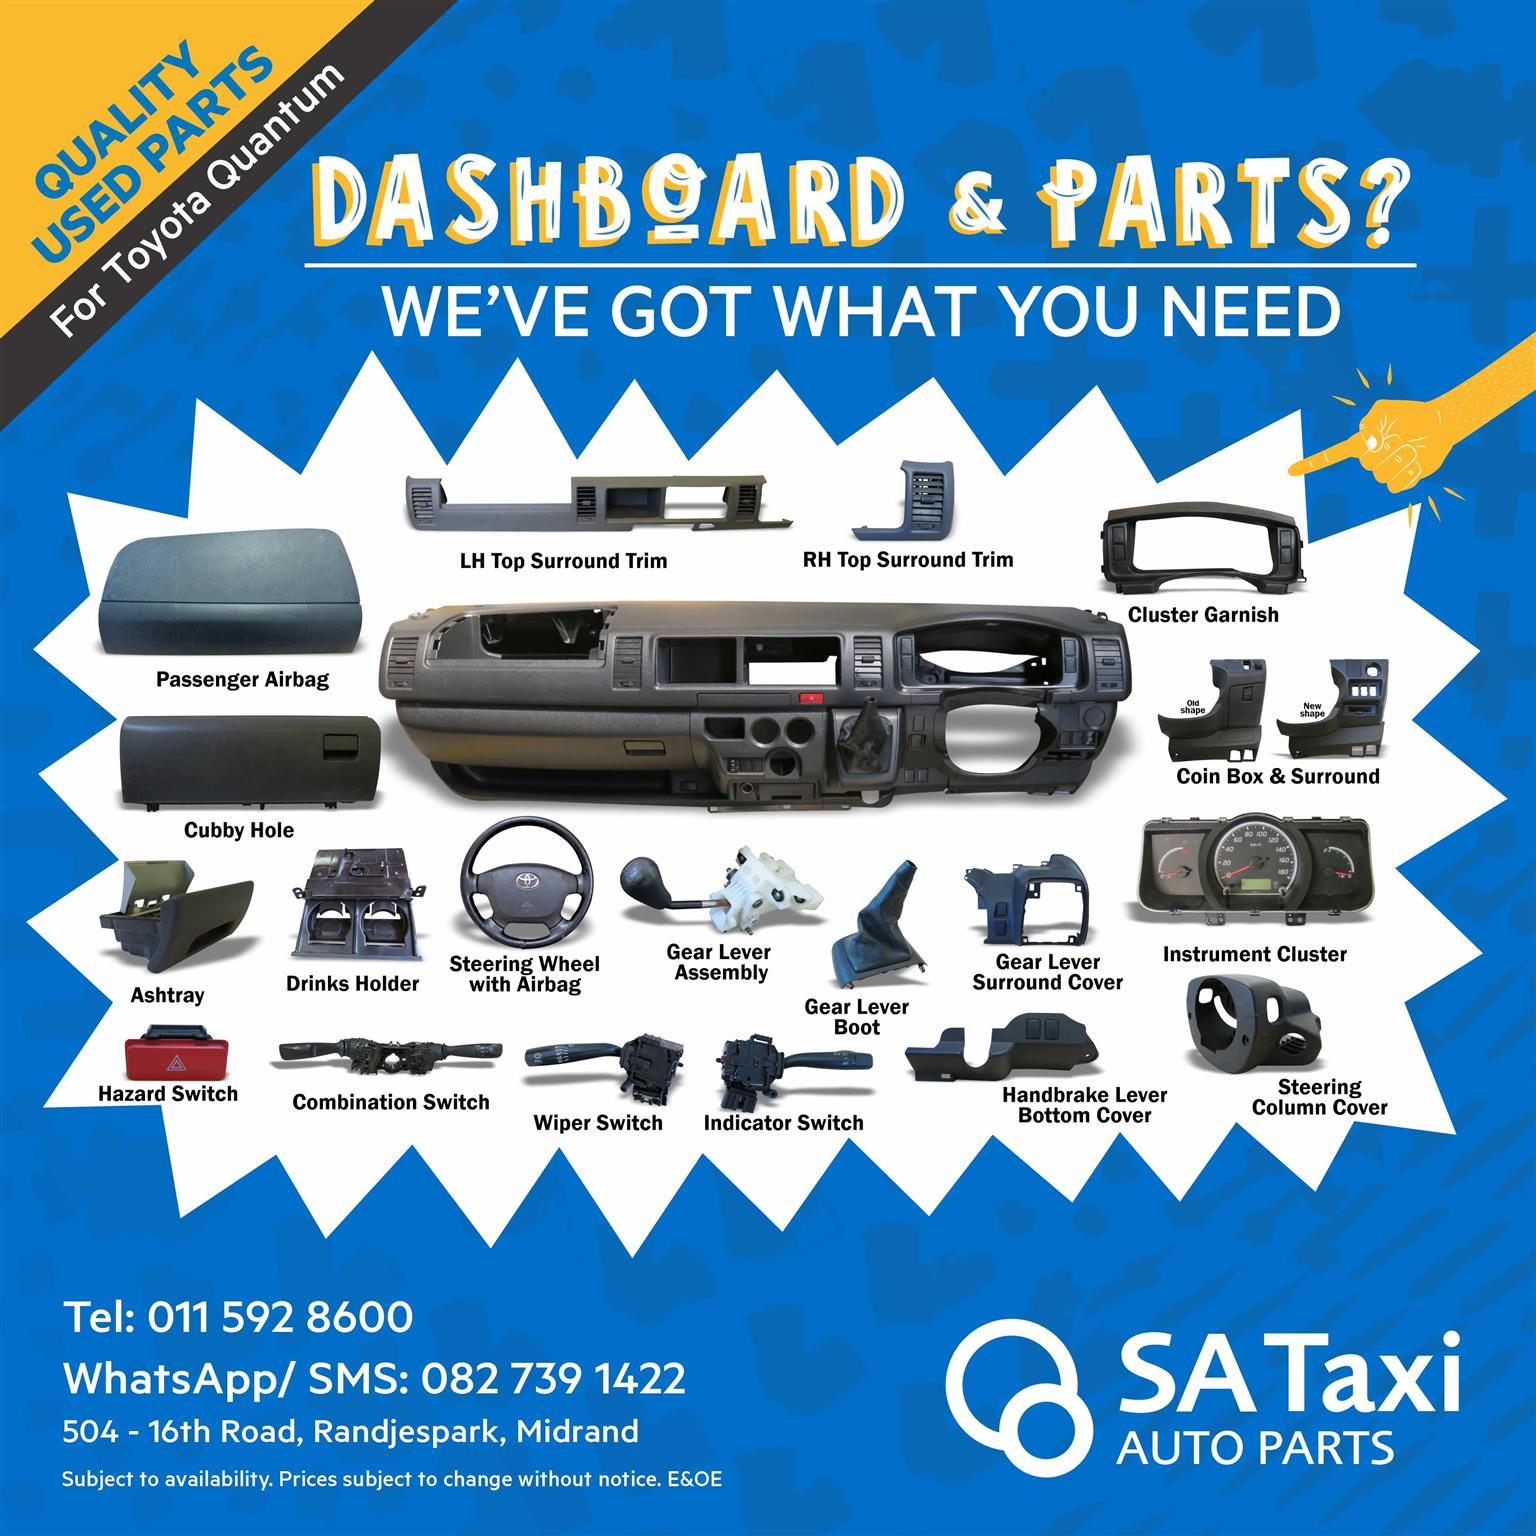 Quality used Dashboard and Parts for Toyota Quantum - SA Taxi Auto Parts